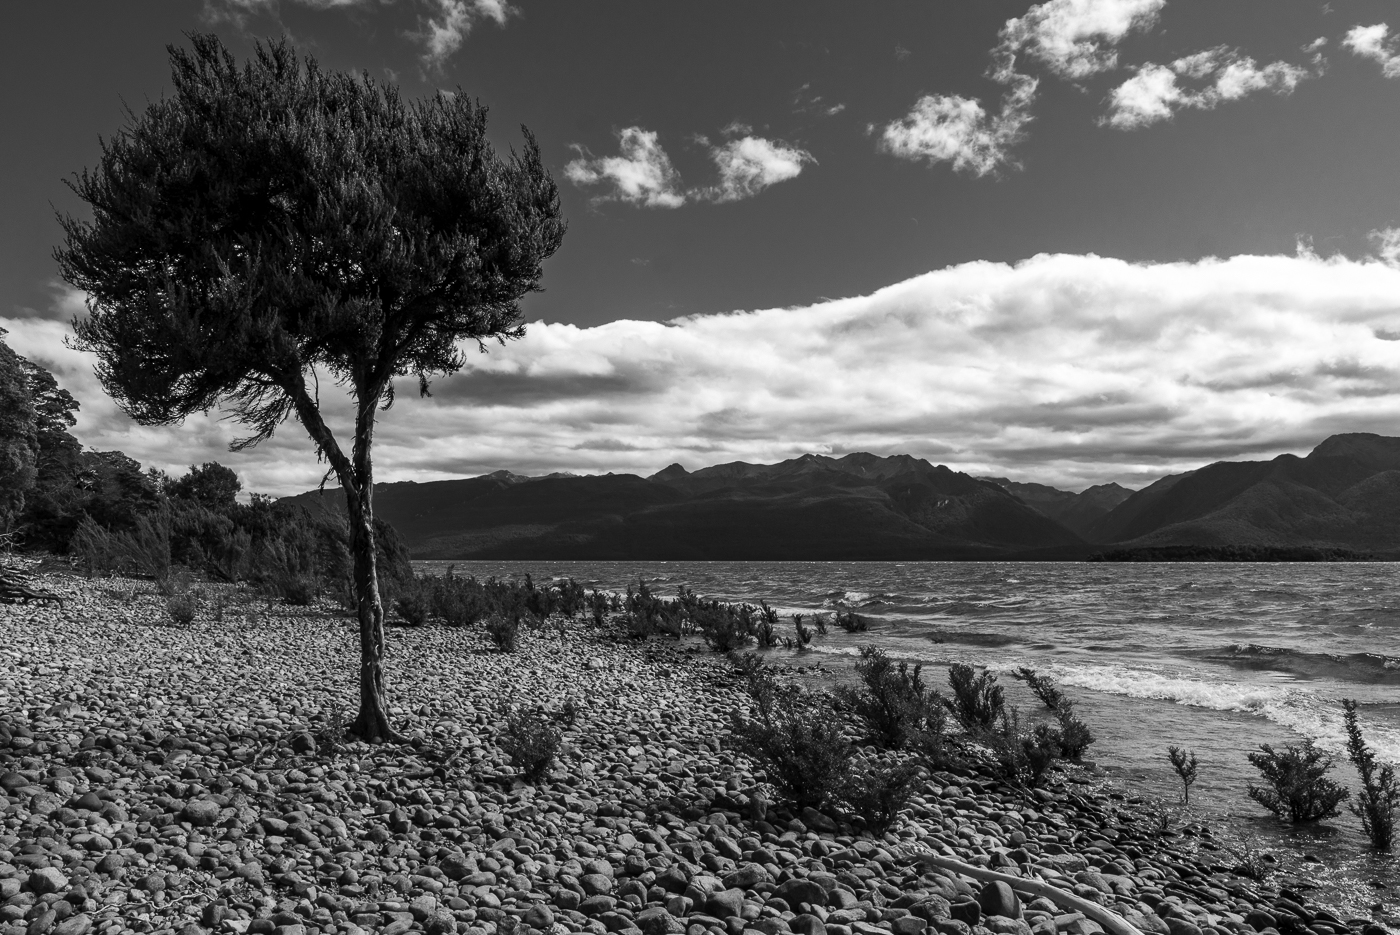 Shoreline on Lake Te Anau, New Zealand